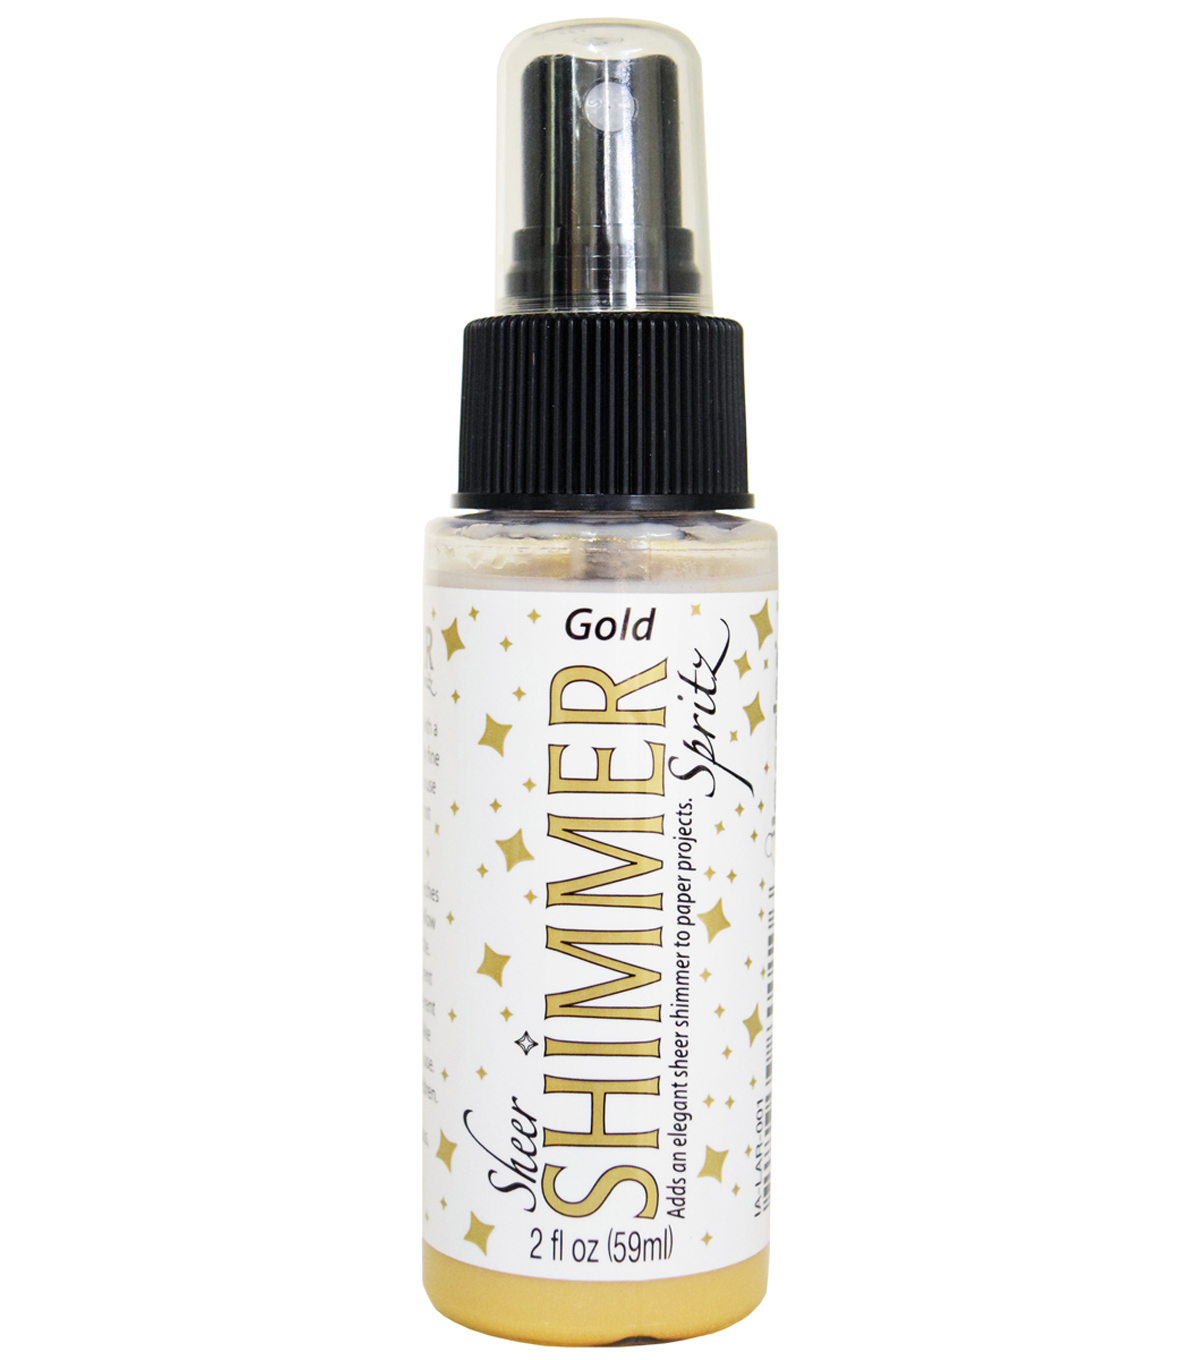 Imagine 2 oz. Crafts Sheer Shimmer Spritz Spray